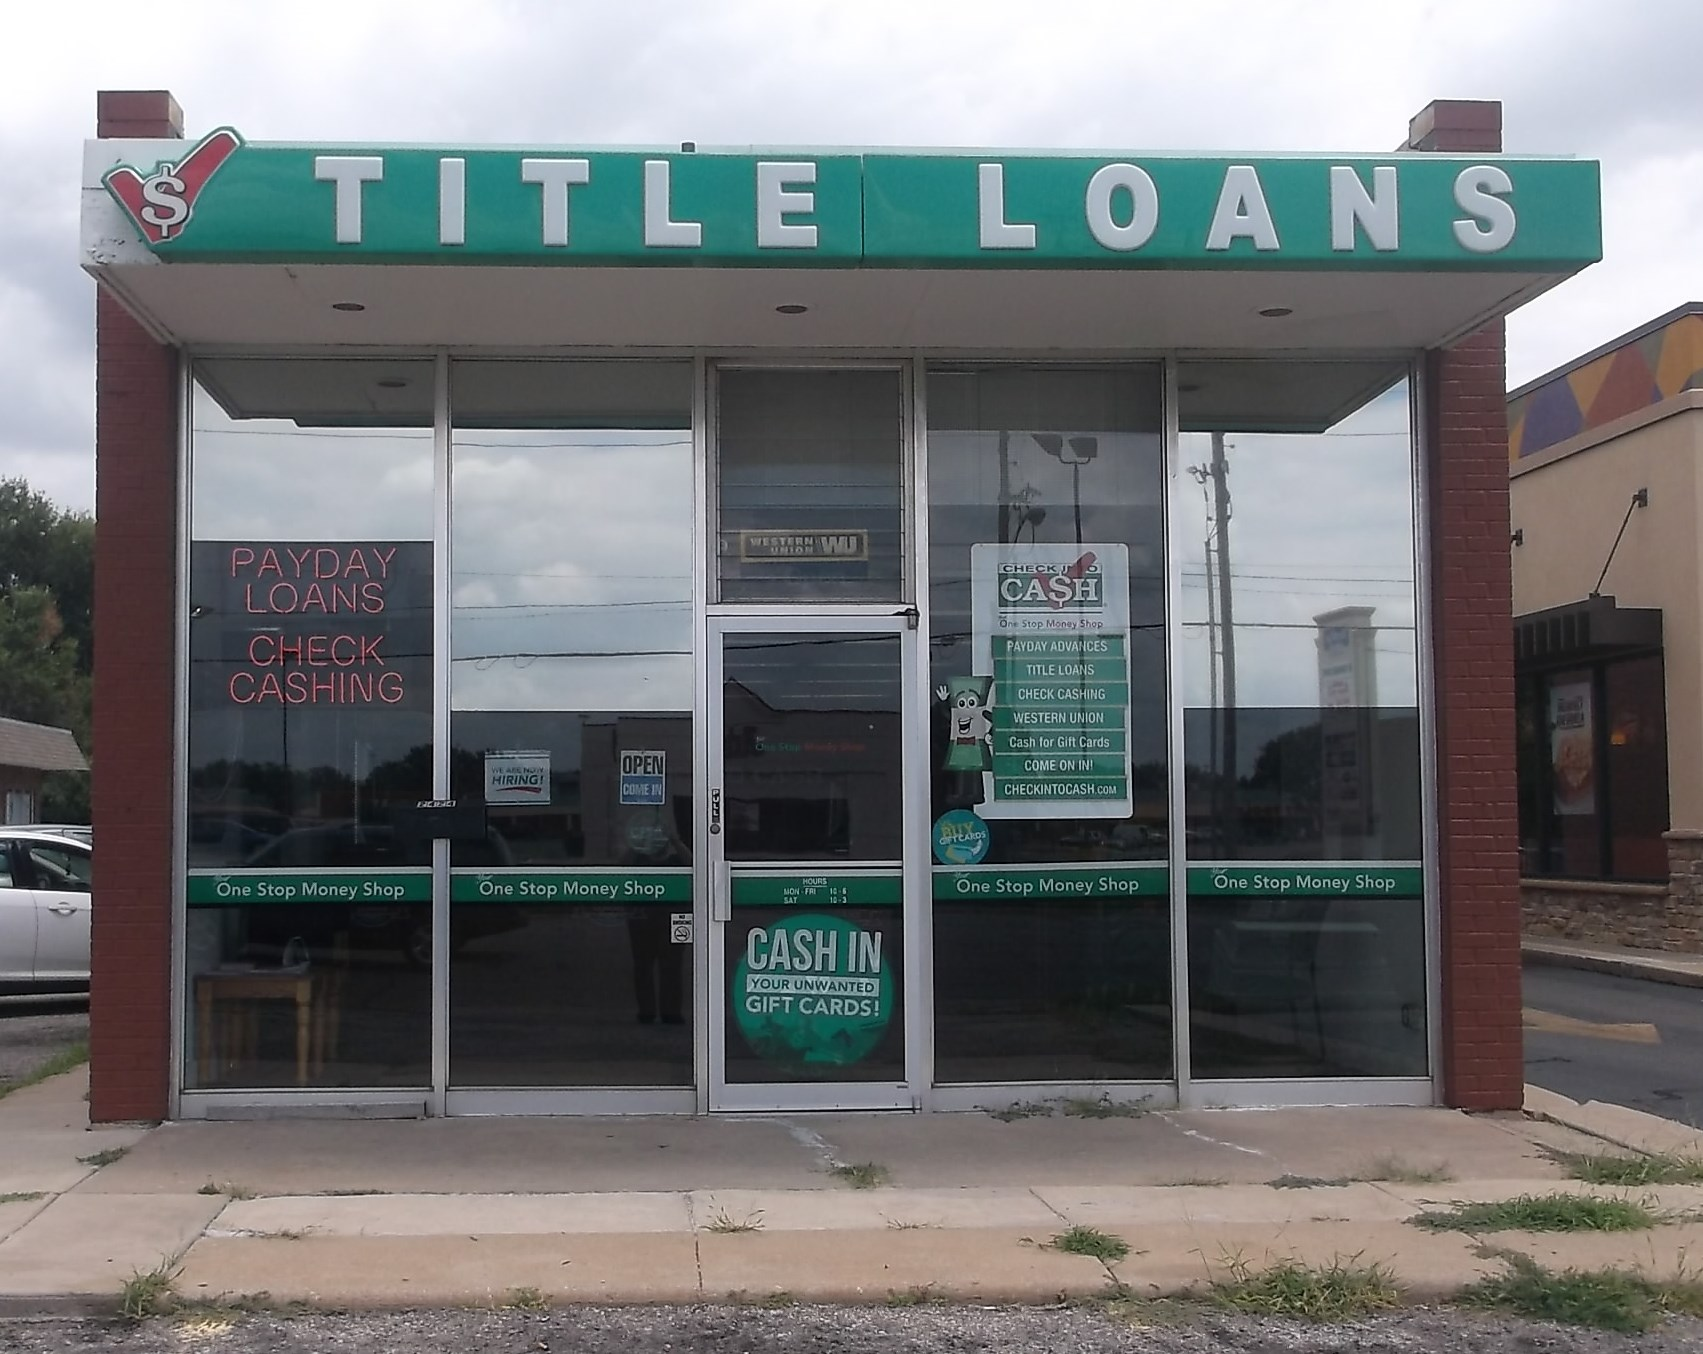 Same day payday loans new jersey image 9